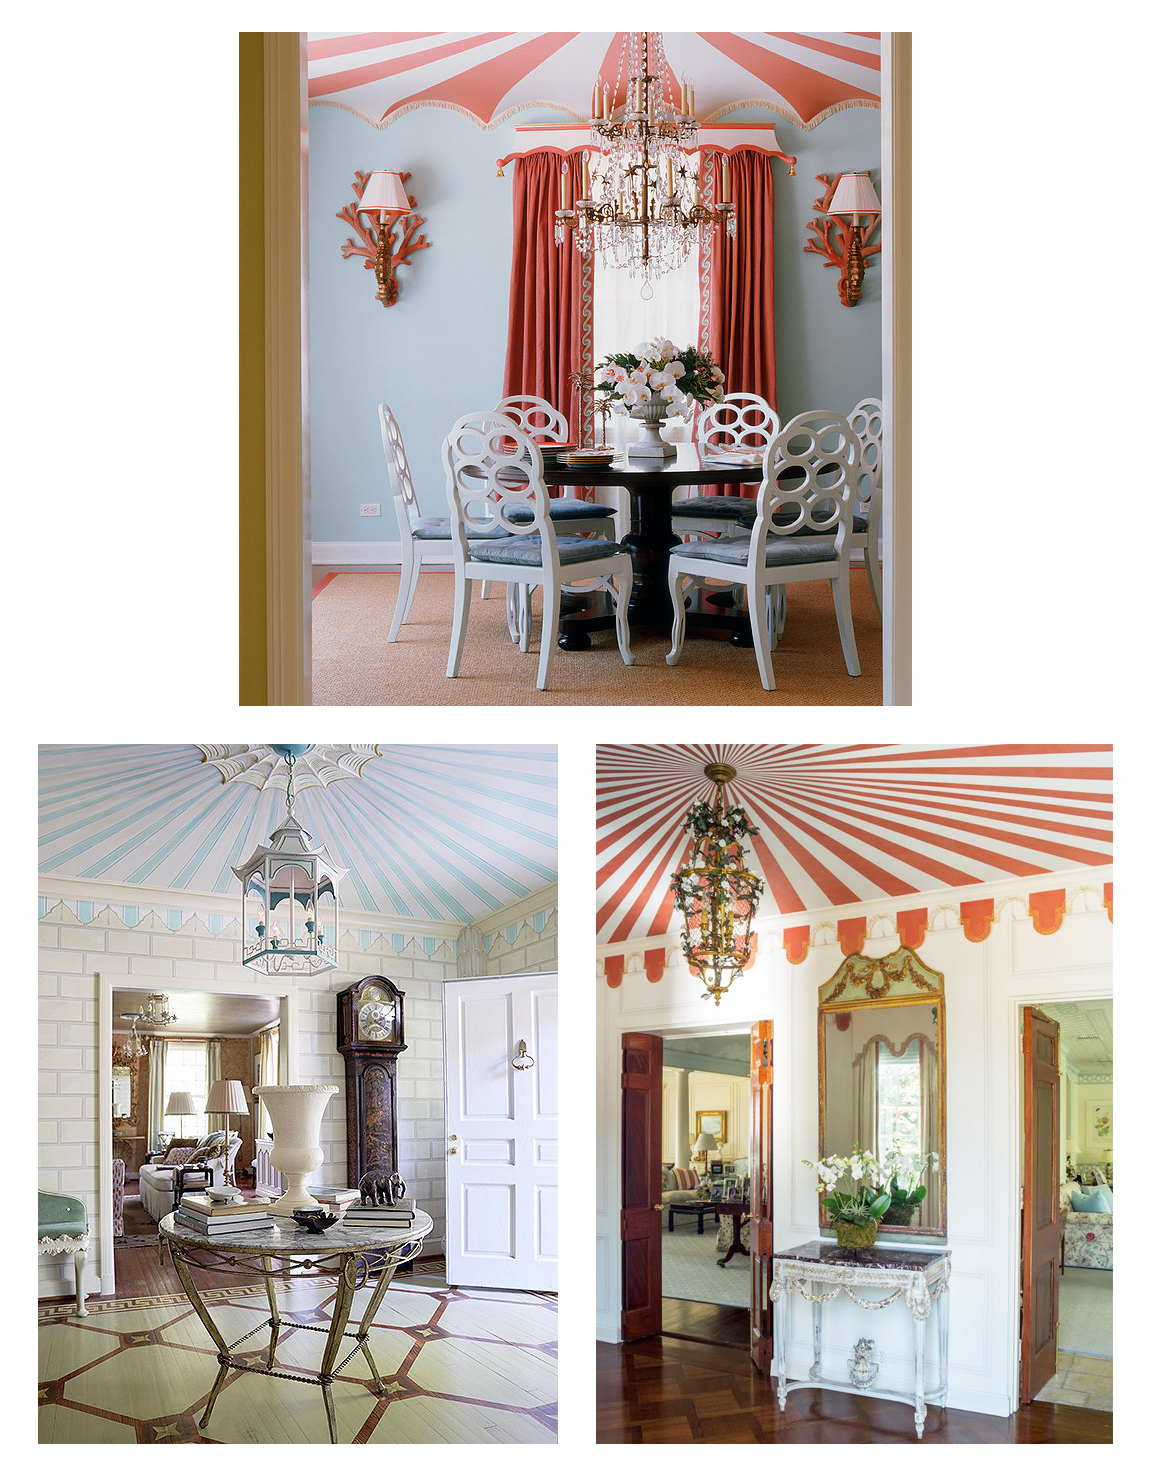 Top: A Palm Beach home by Richard Keith Langham. Bottom Left: The North Carolina Regency revival home of Jason Oliver Nixon and John Loecke of  Madcap Cottage . Image from  Zsa Zsa Bellagio . Bottom Right: A 1930s revival designed by Leta Austin Foster, image from  The Glam Pad